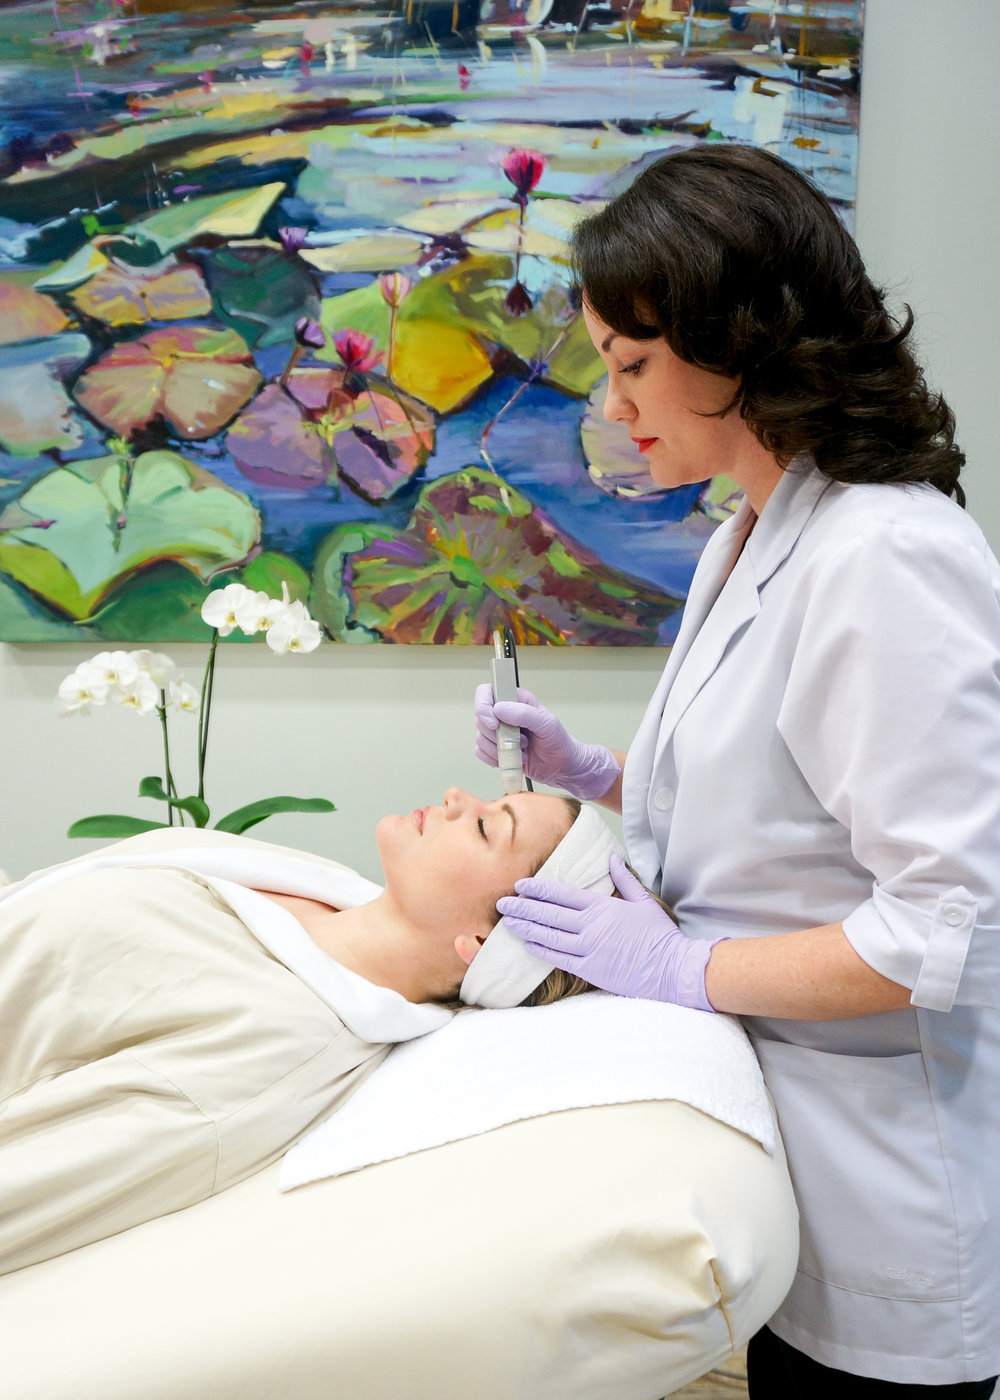 WELCOME to the med spa - The Medical Spa at Kiawah offers medical skin treatments like facials, microdermabrasion and peels, along with massage, injectables, fillers, teeth whitening, waxing, B12 shots, microblading, permanent makeup, lash lifts and light therapy, in a professional and inviting spa setting.